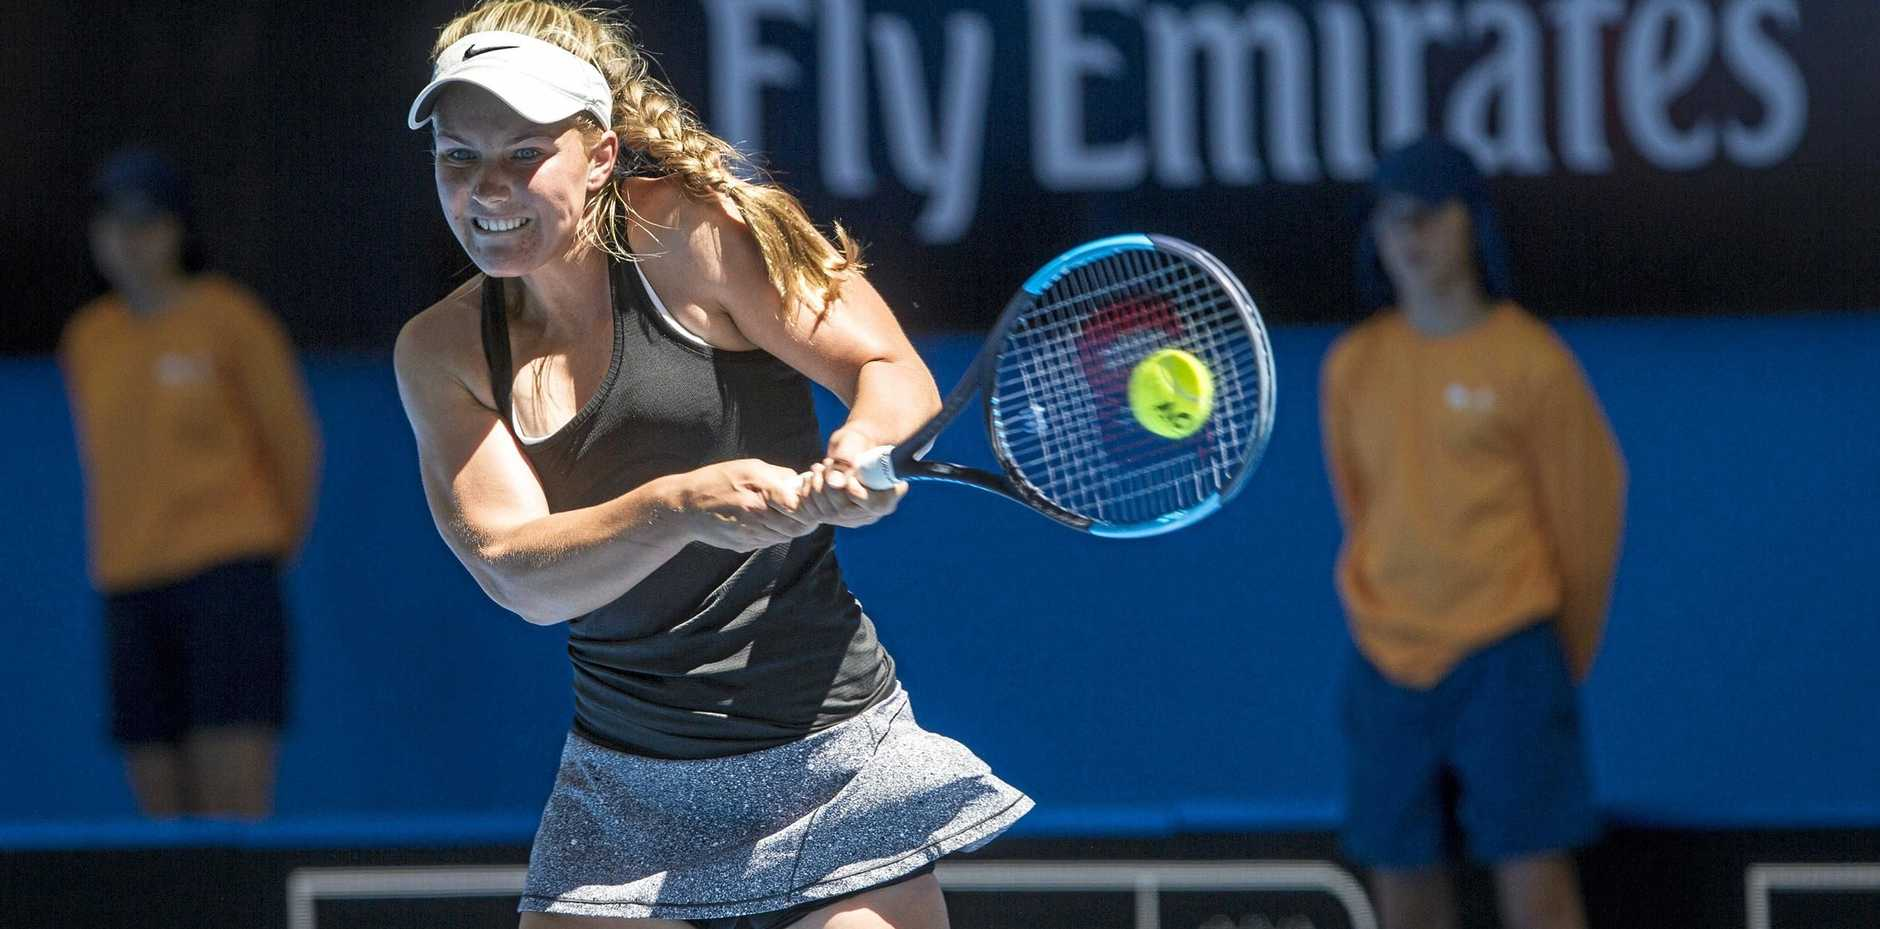 Maddison Inglis flattens a return against Coco Vandeweghe at the Hopman Cup.